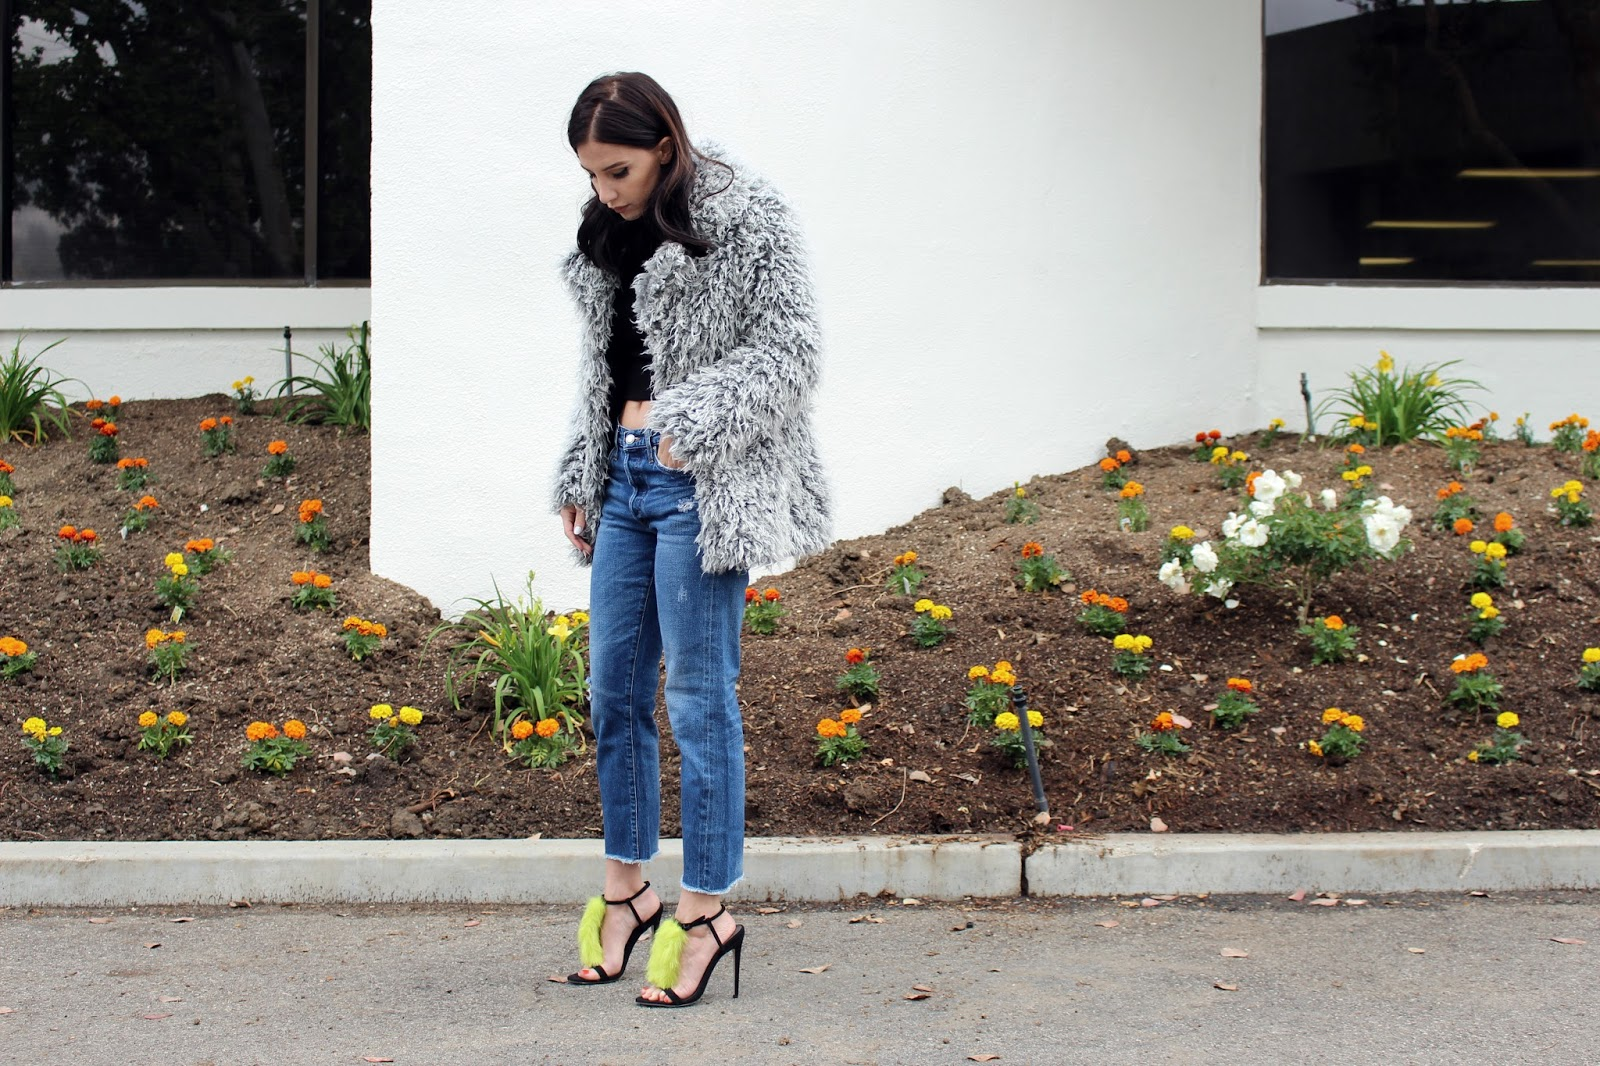 fur shoes, fur heels, vintage jeans, faux fur jacket, fur coat, spring 2016, spring trends, street style, tourdestfu, turtleneck, layered outfit